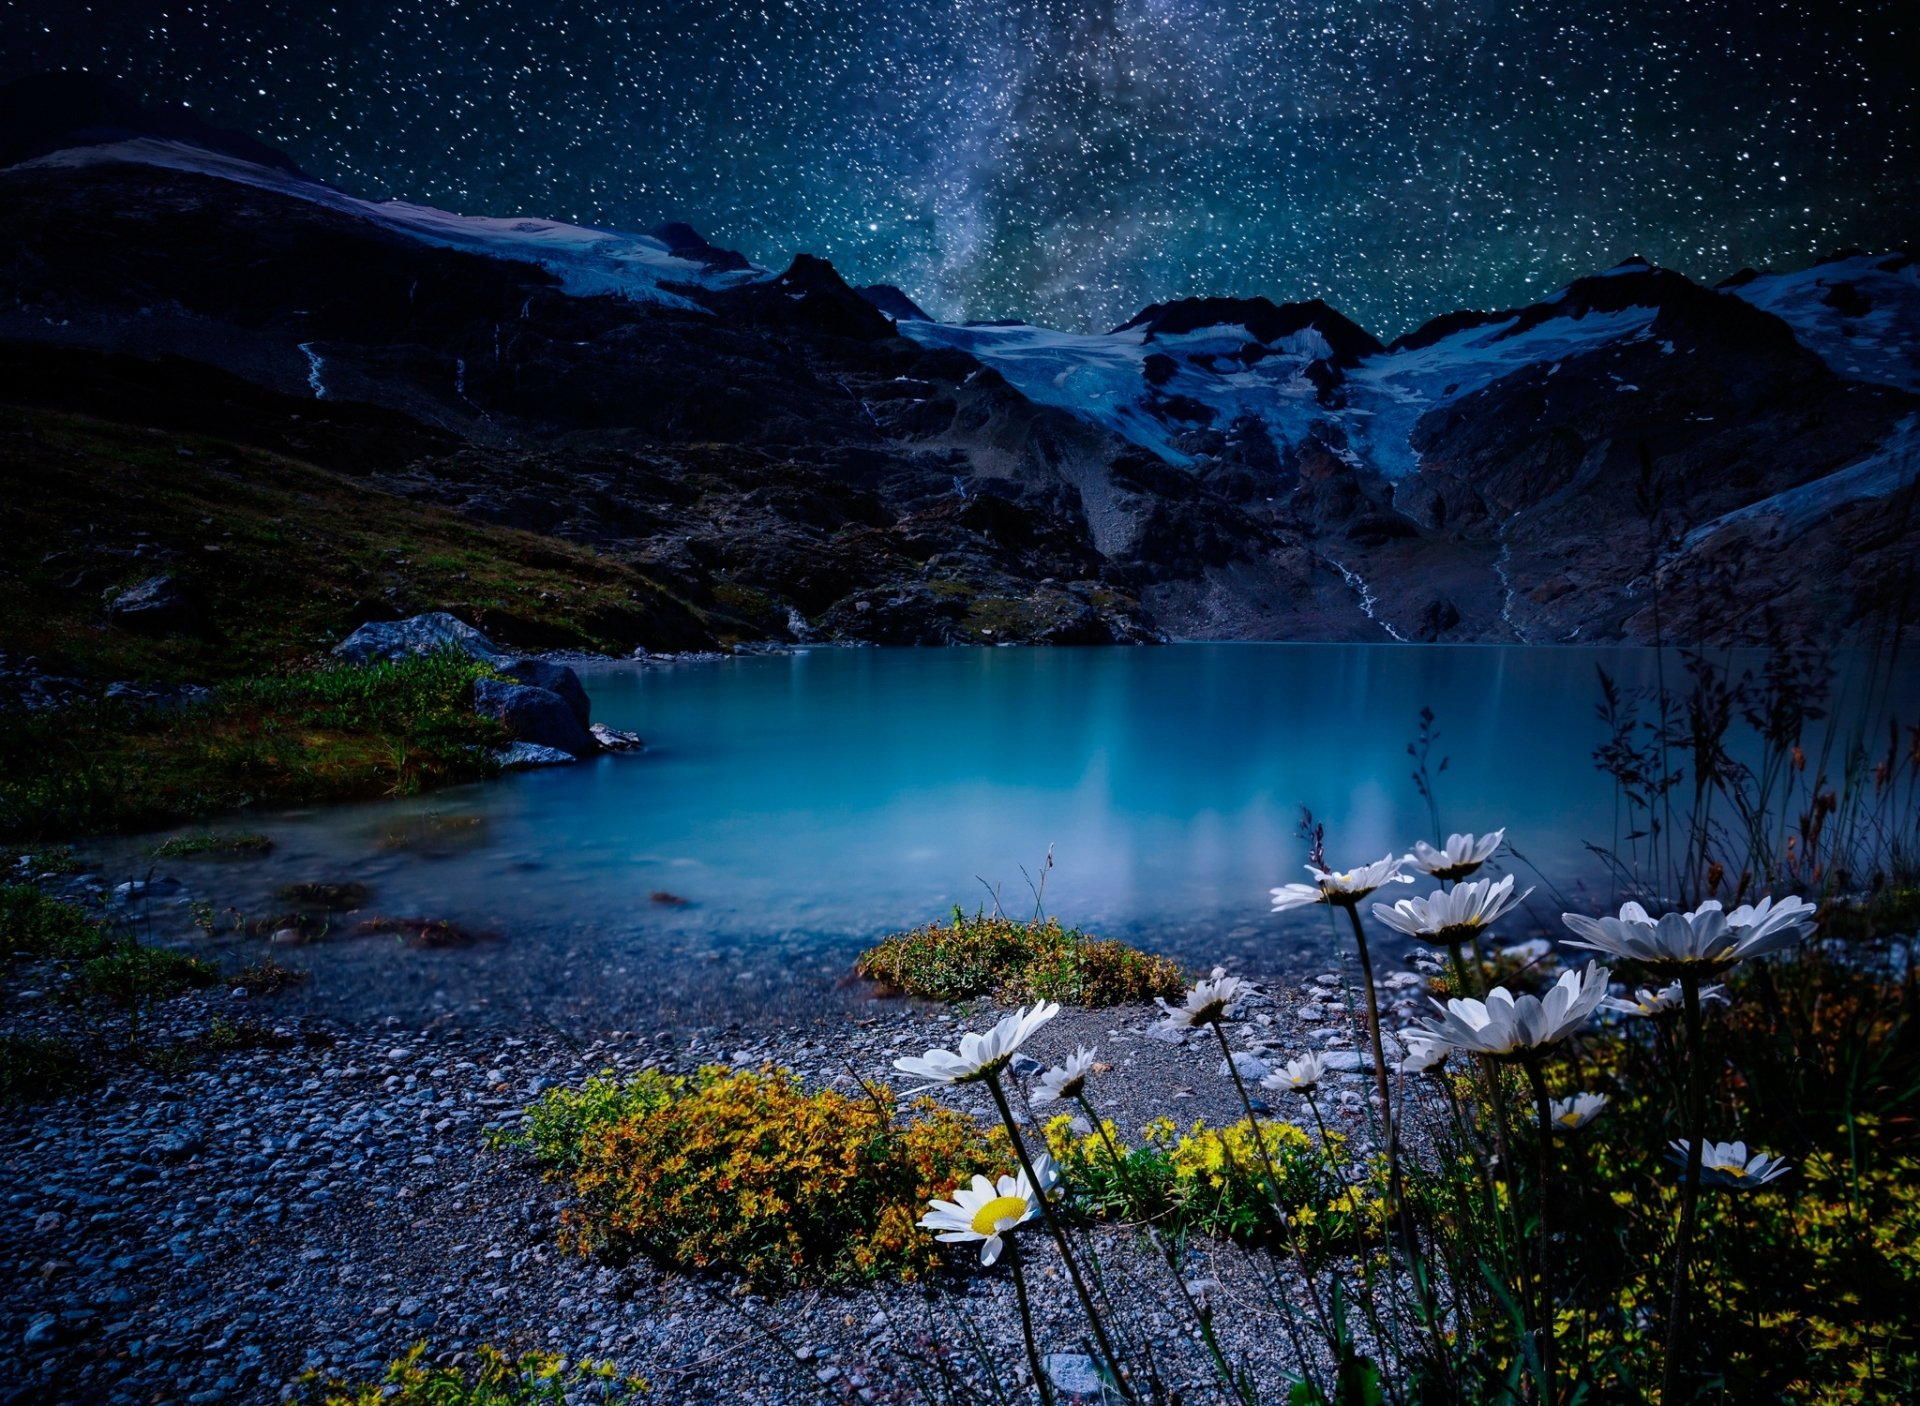 Earth - Night  Nature Lake Stars White Flower Wallpaper